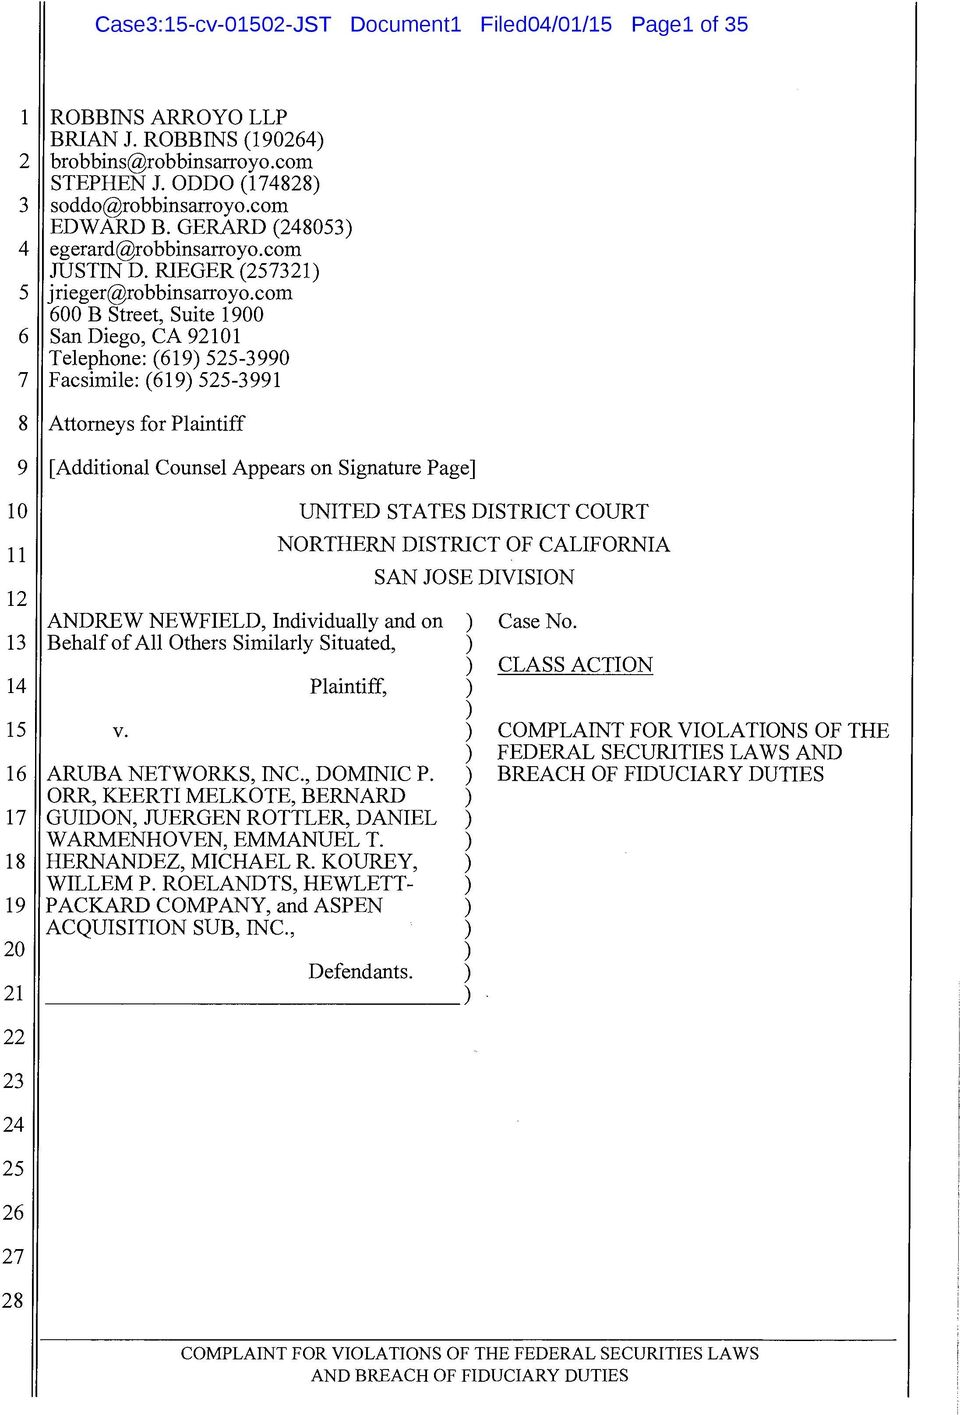 com 00 B Street, Suite 00 San Diego, CA 0 Telephone: () -0 Facsimile: () - Attorneys for Plaintiff [Additional Counsel Appears on Signature Page] ANDREW NEWFIELD, Individually and on Behalf of All